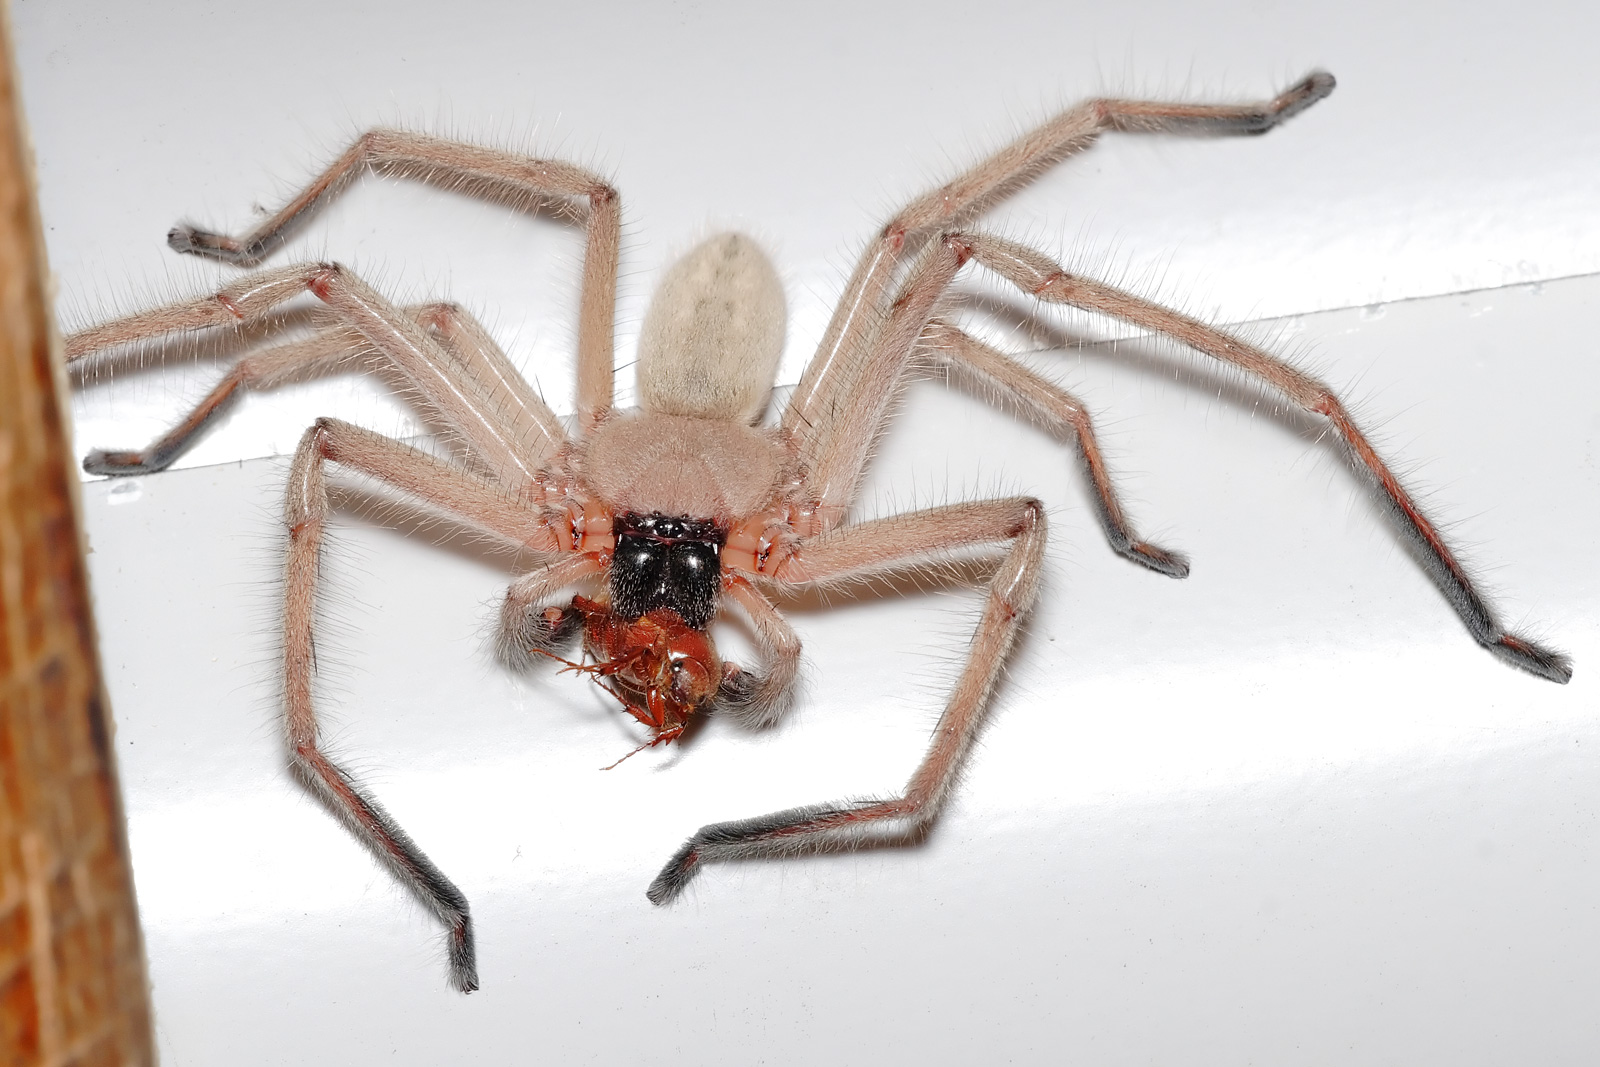 File:Huntsman spider with meal.jpg - Wikimedia Commons